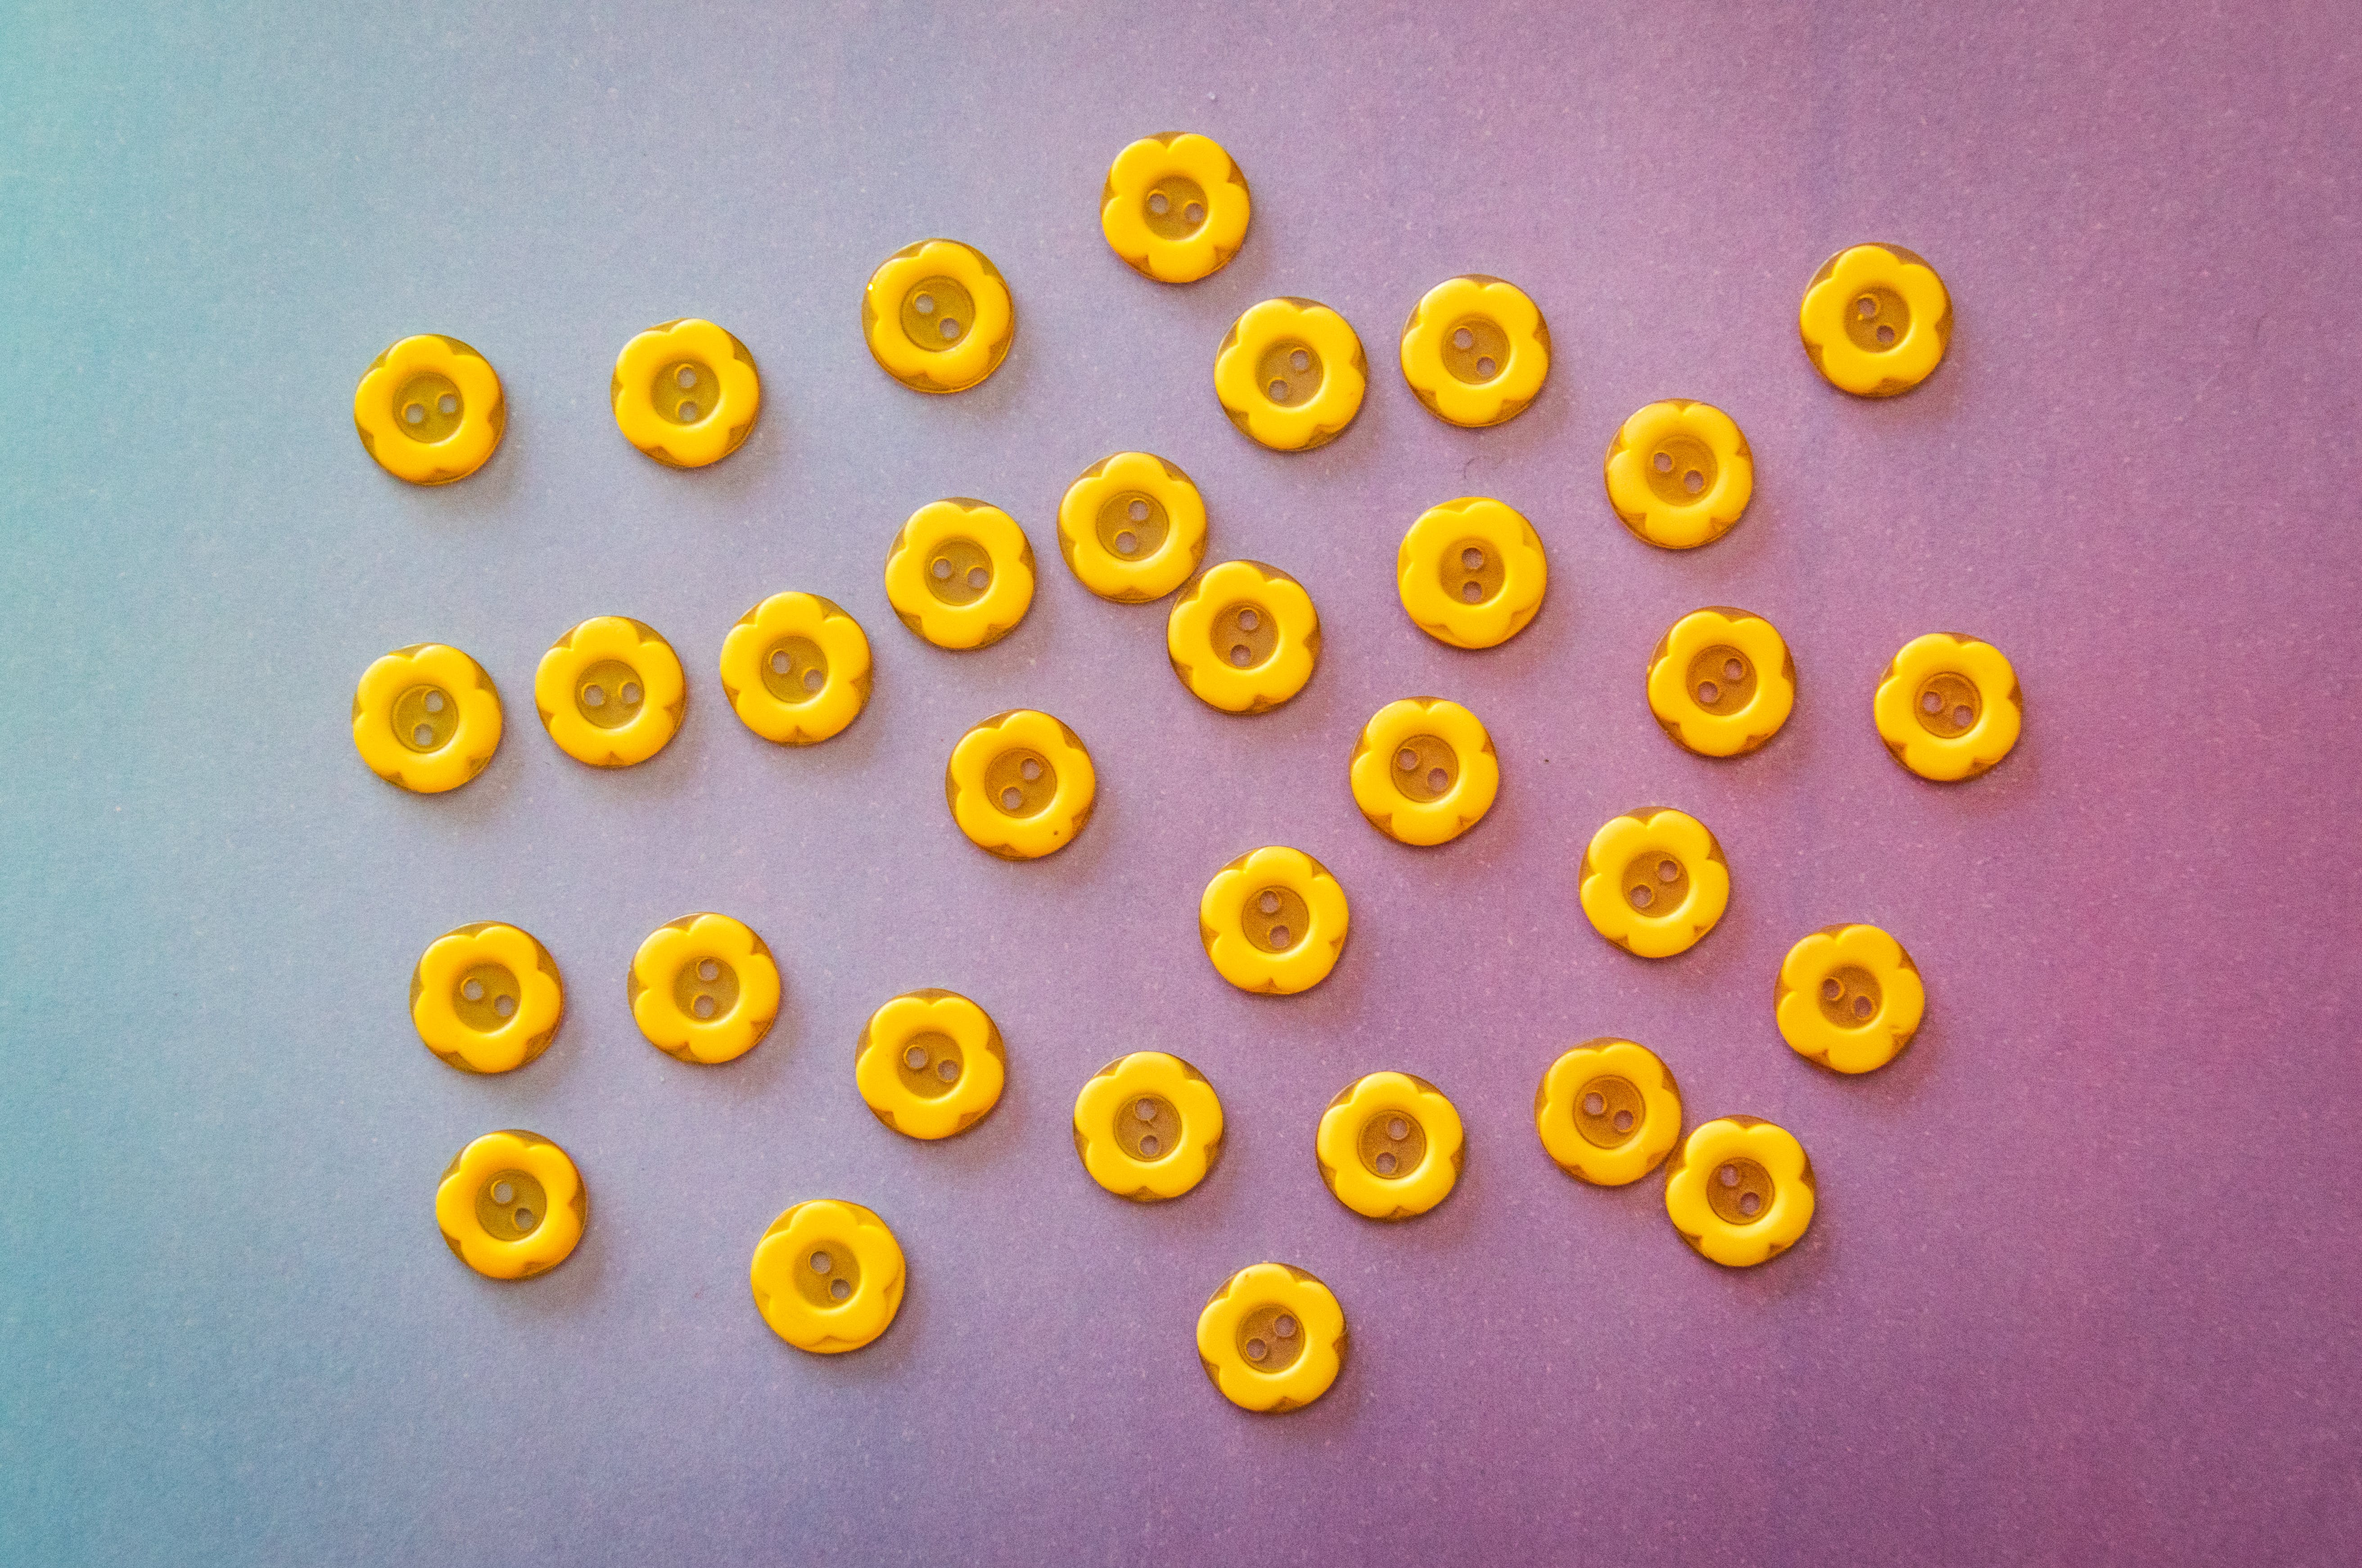 Photo of Yellow Buttons on Surface